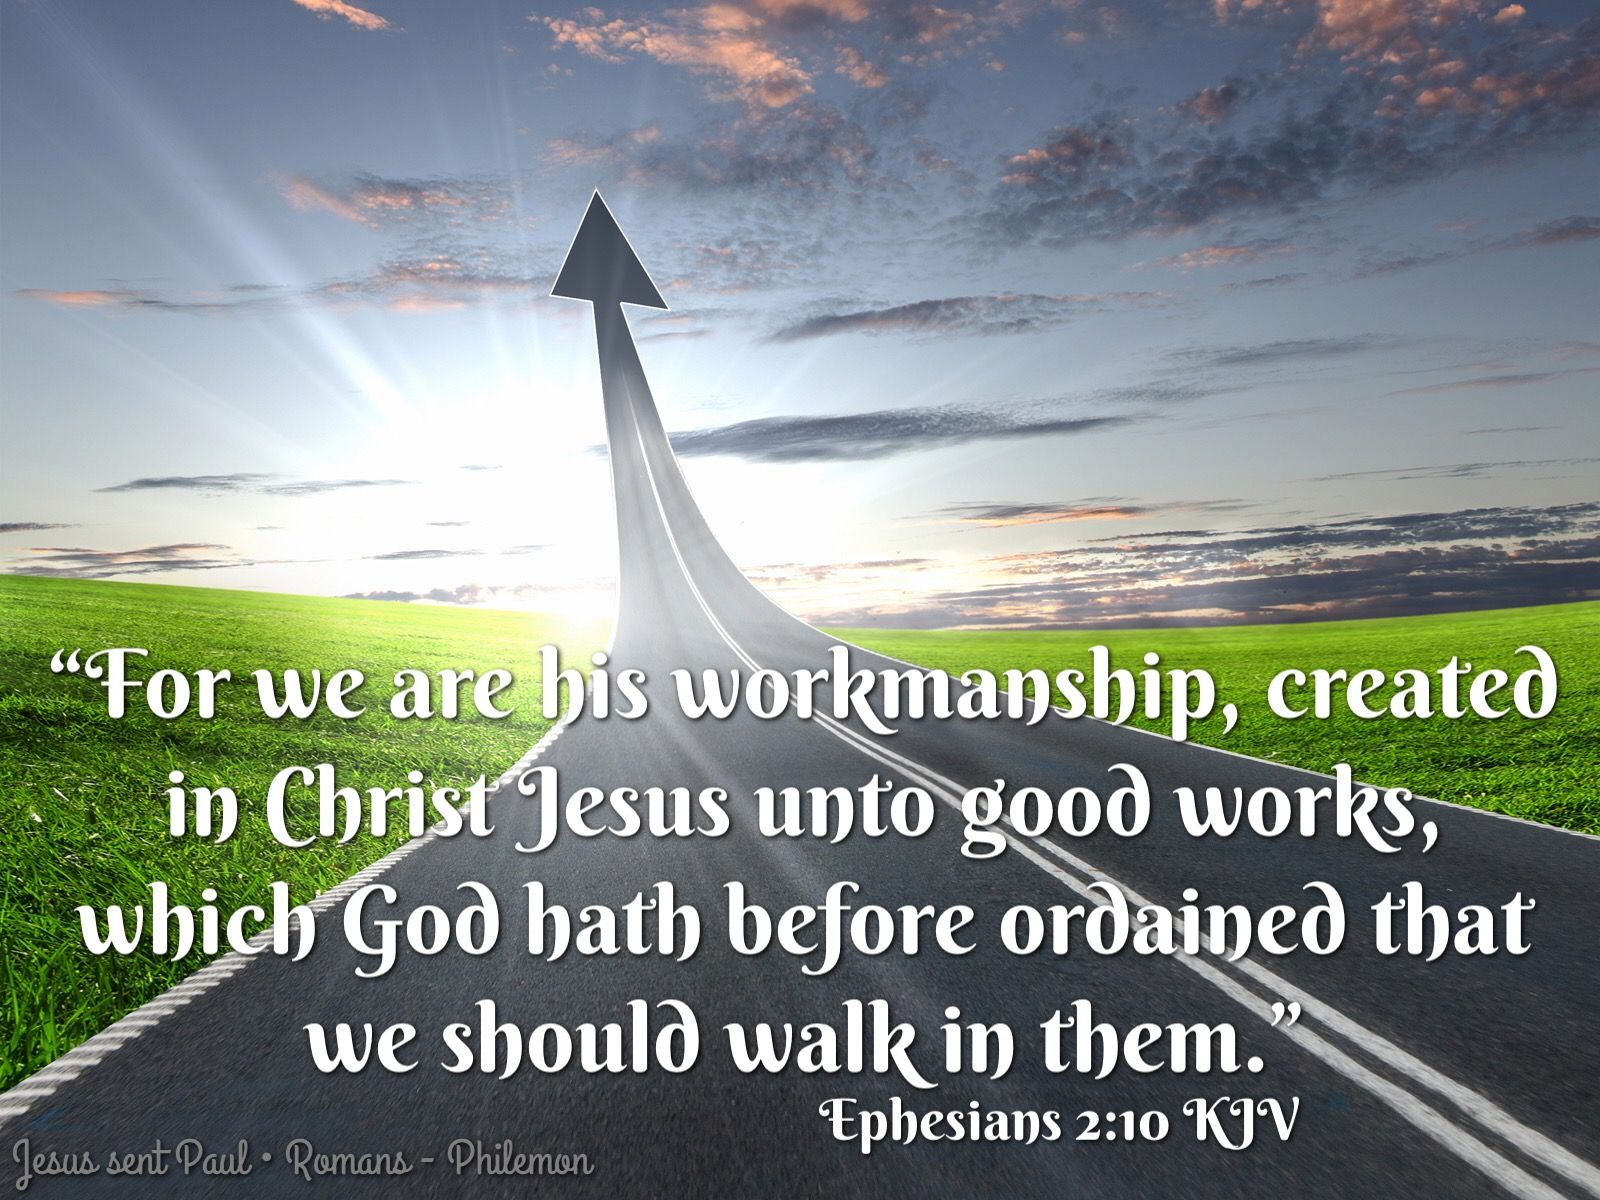 """""""For we are his workmanship, created in Christ Jesus unto good works, which God hath before ordained that we should walk in them."""" Ephesians 2:10 KJV"""